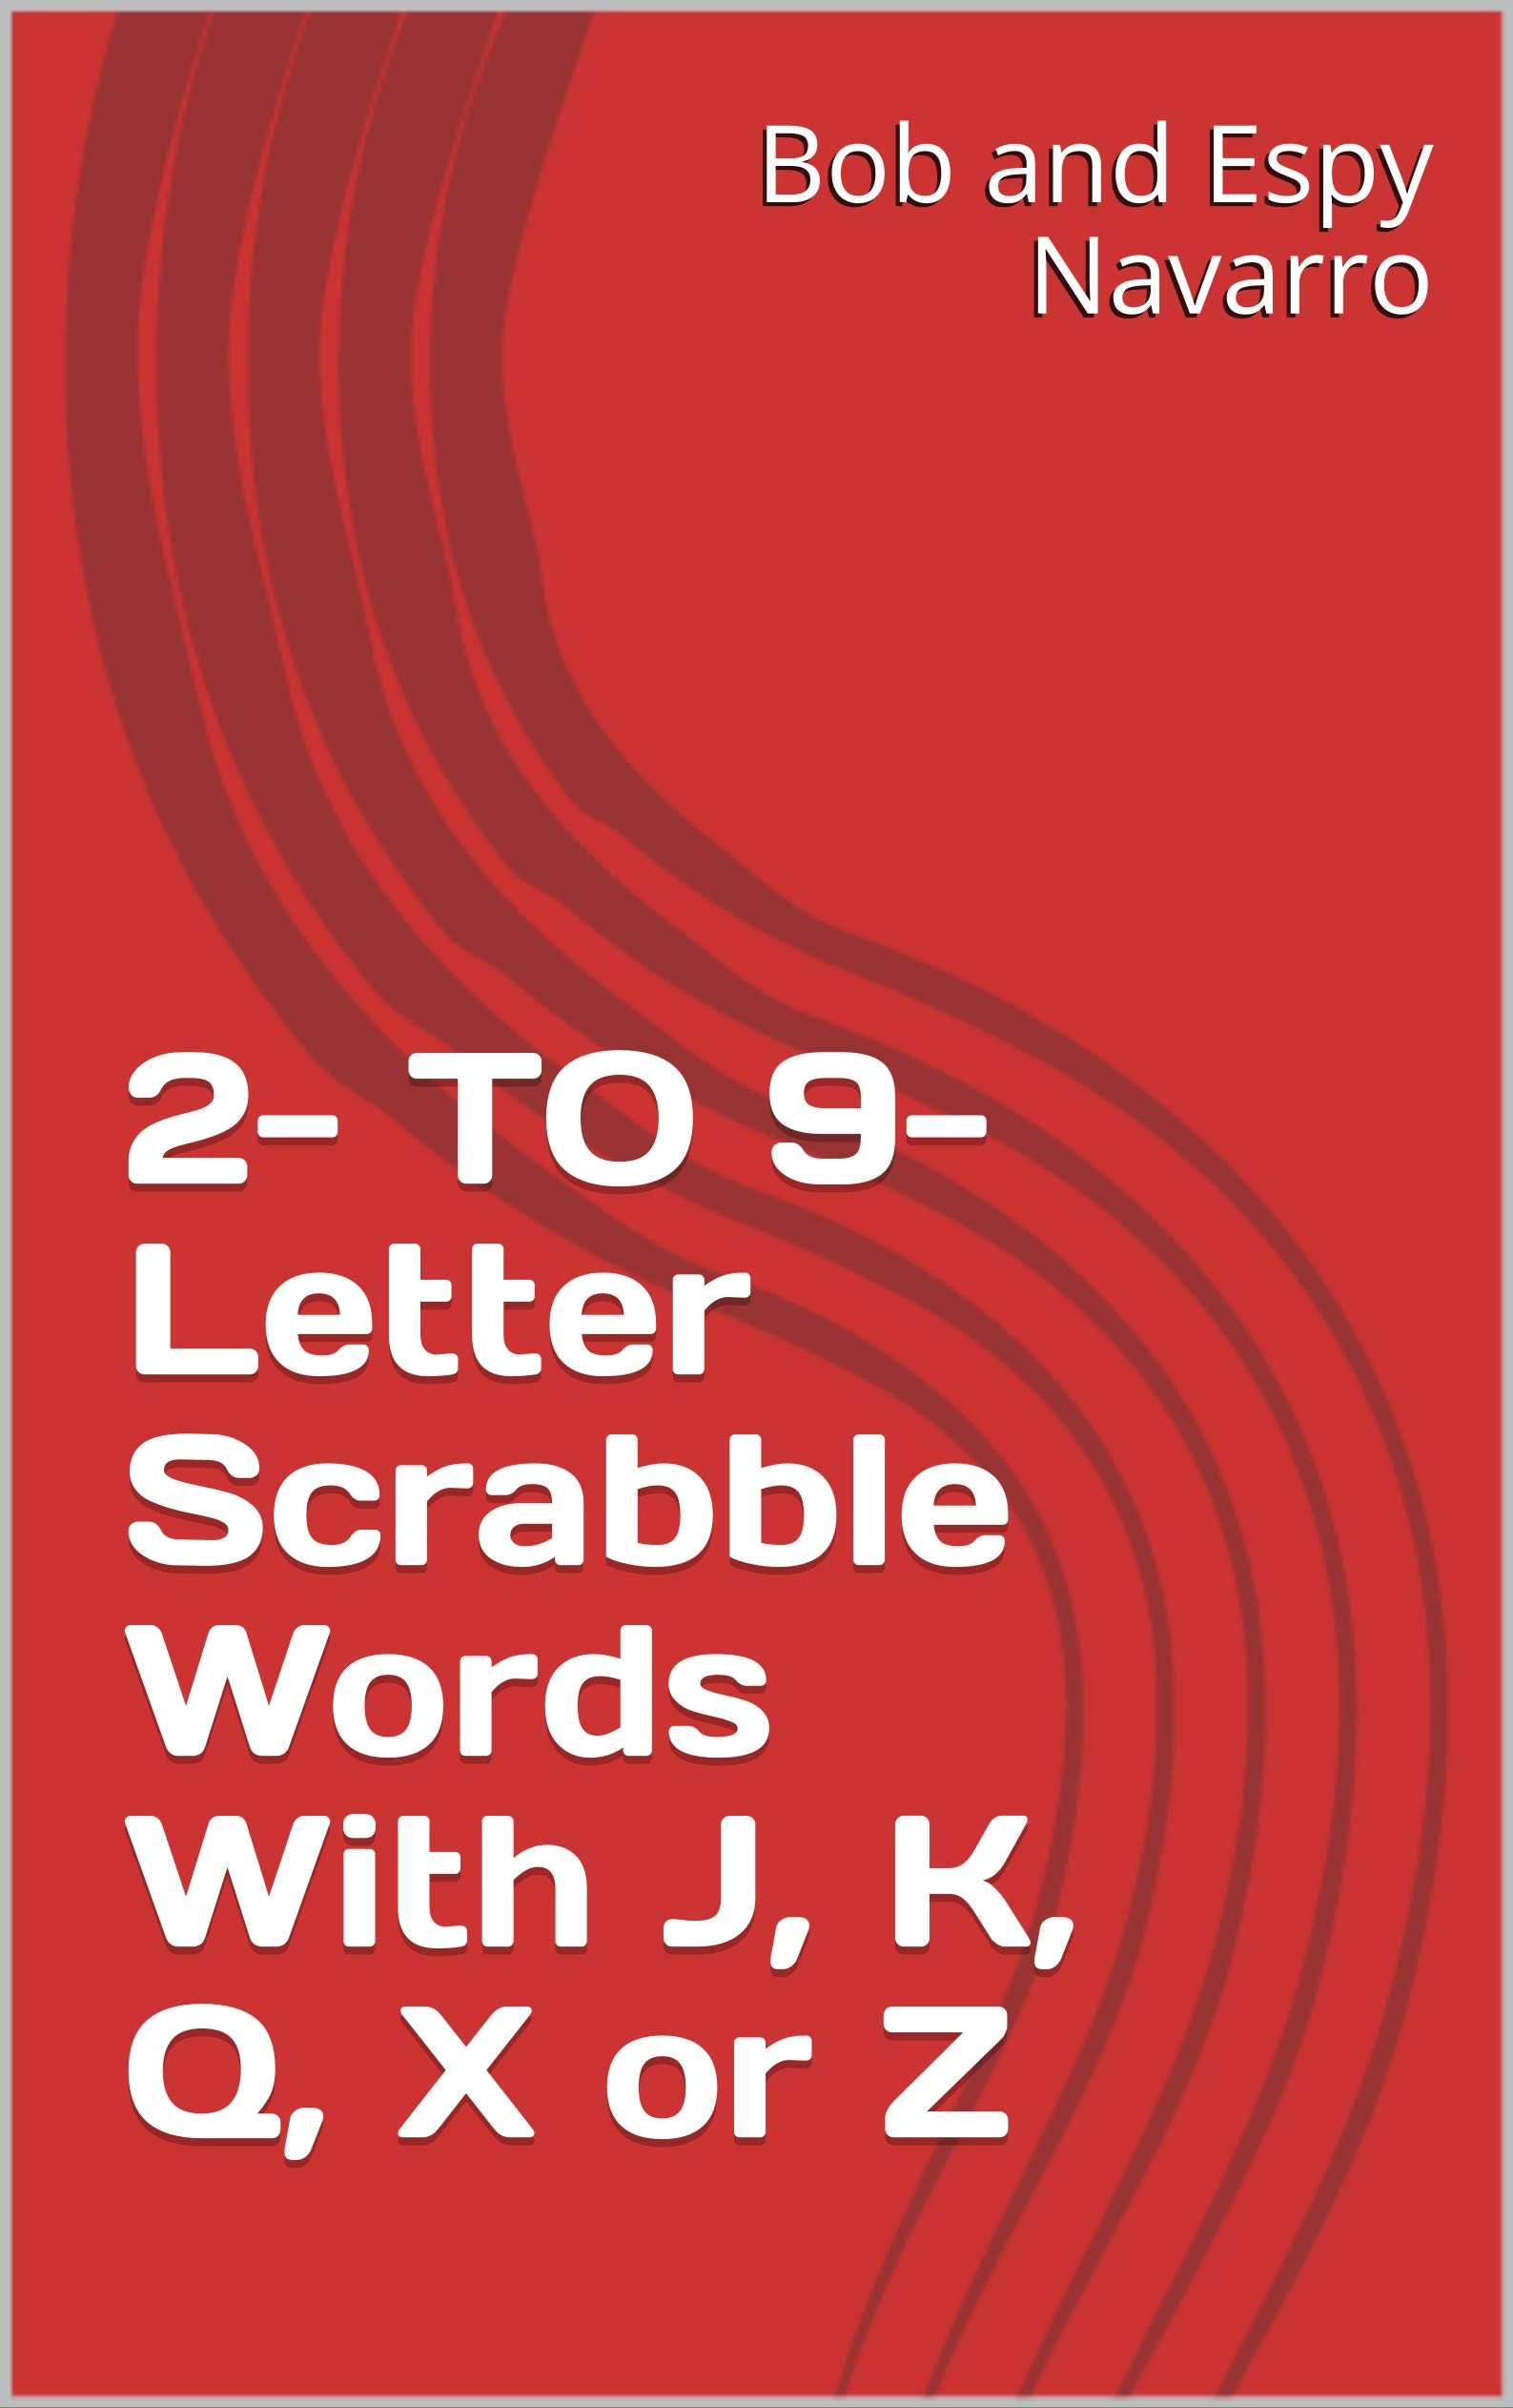 2 To 9 Letter Scrabble Words With J K Q X Or Z Buy Online In Cayman Islands At Desertcart